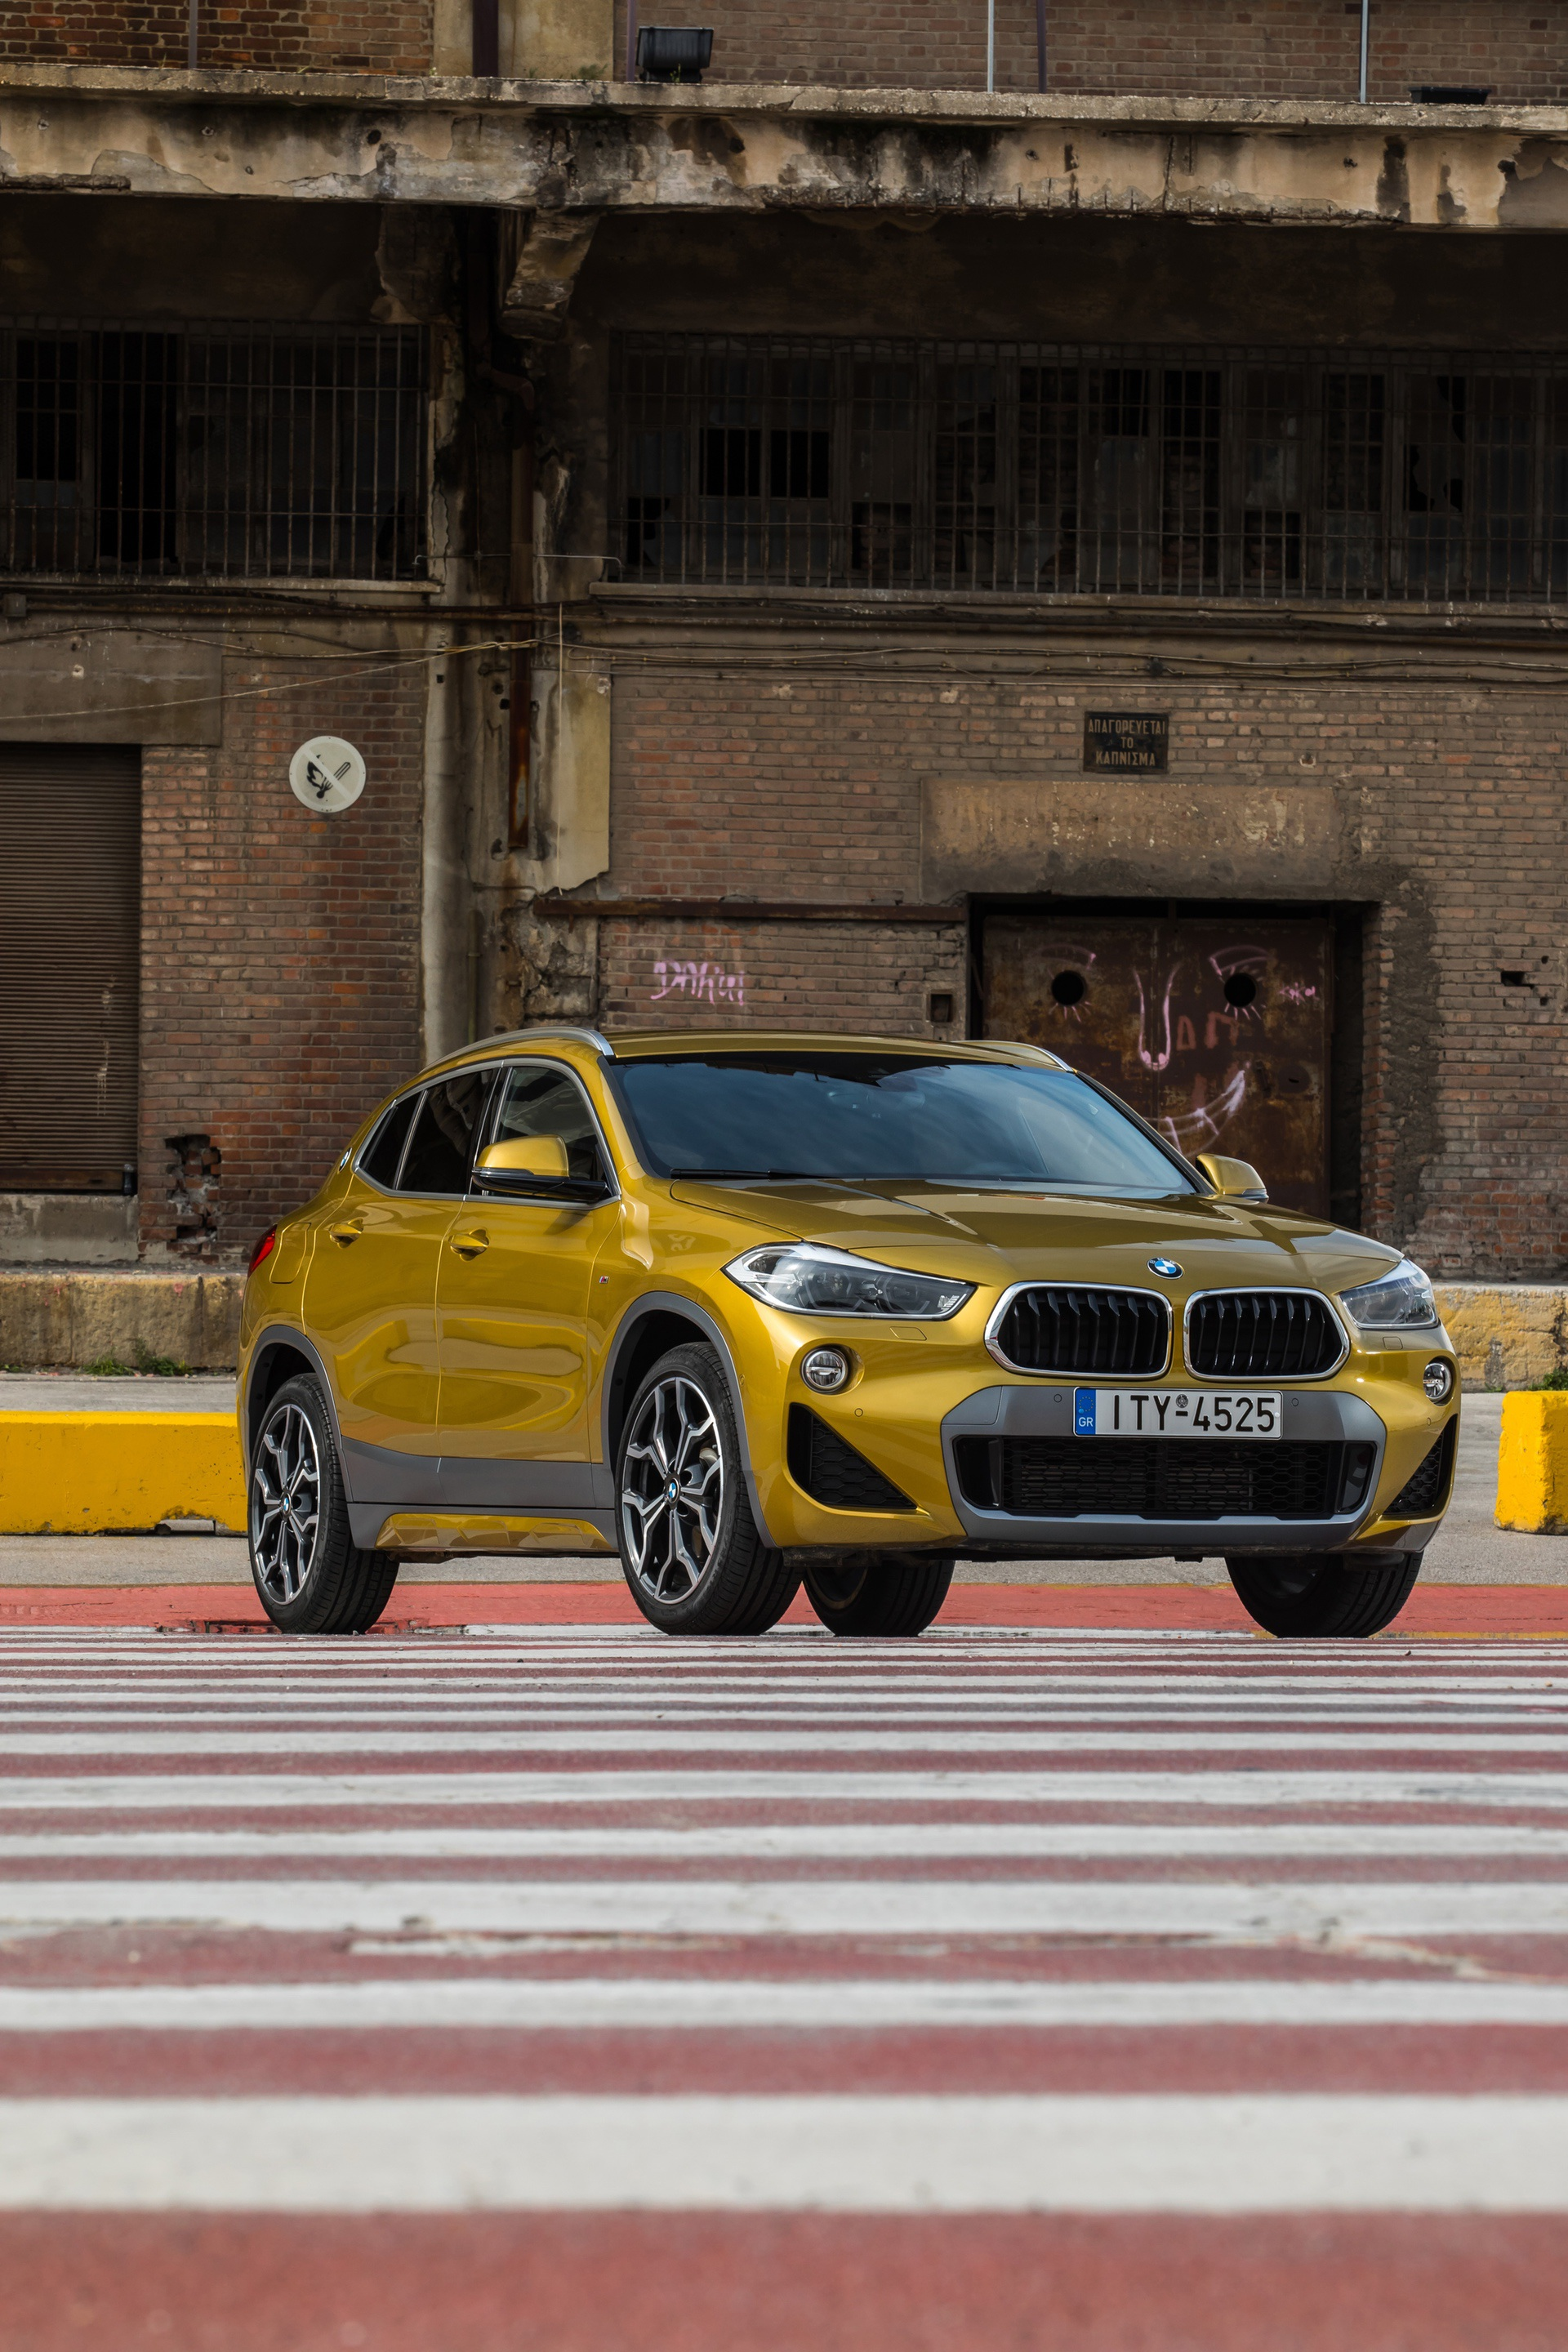 BMW_X2_Greek_presskit_0072